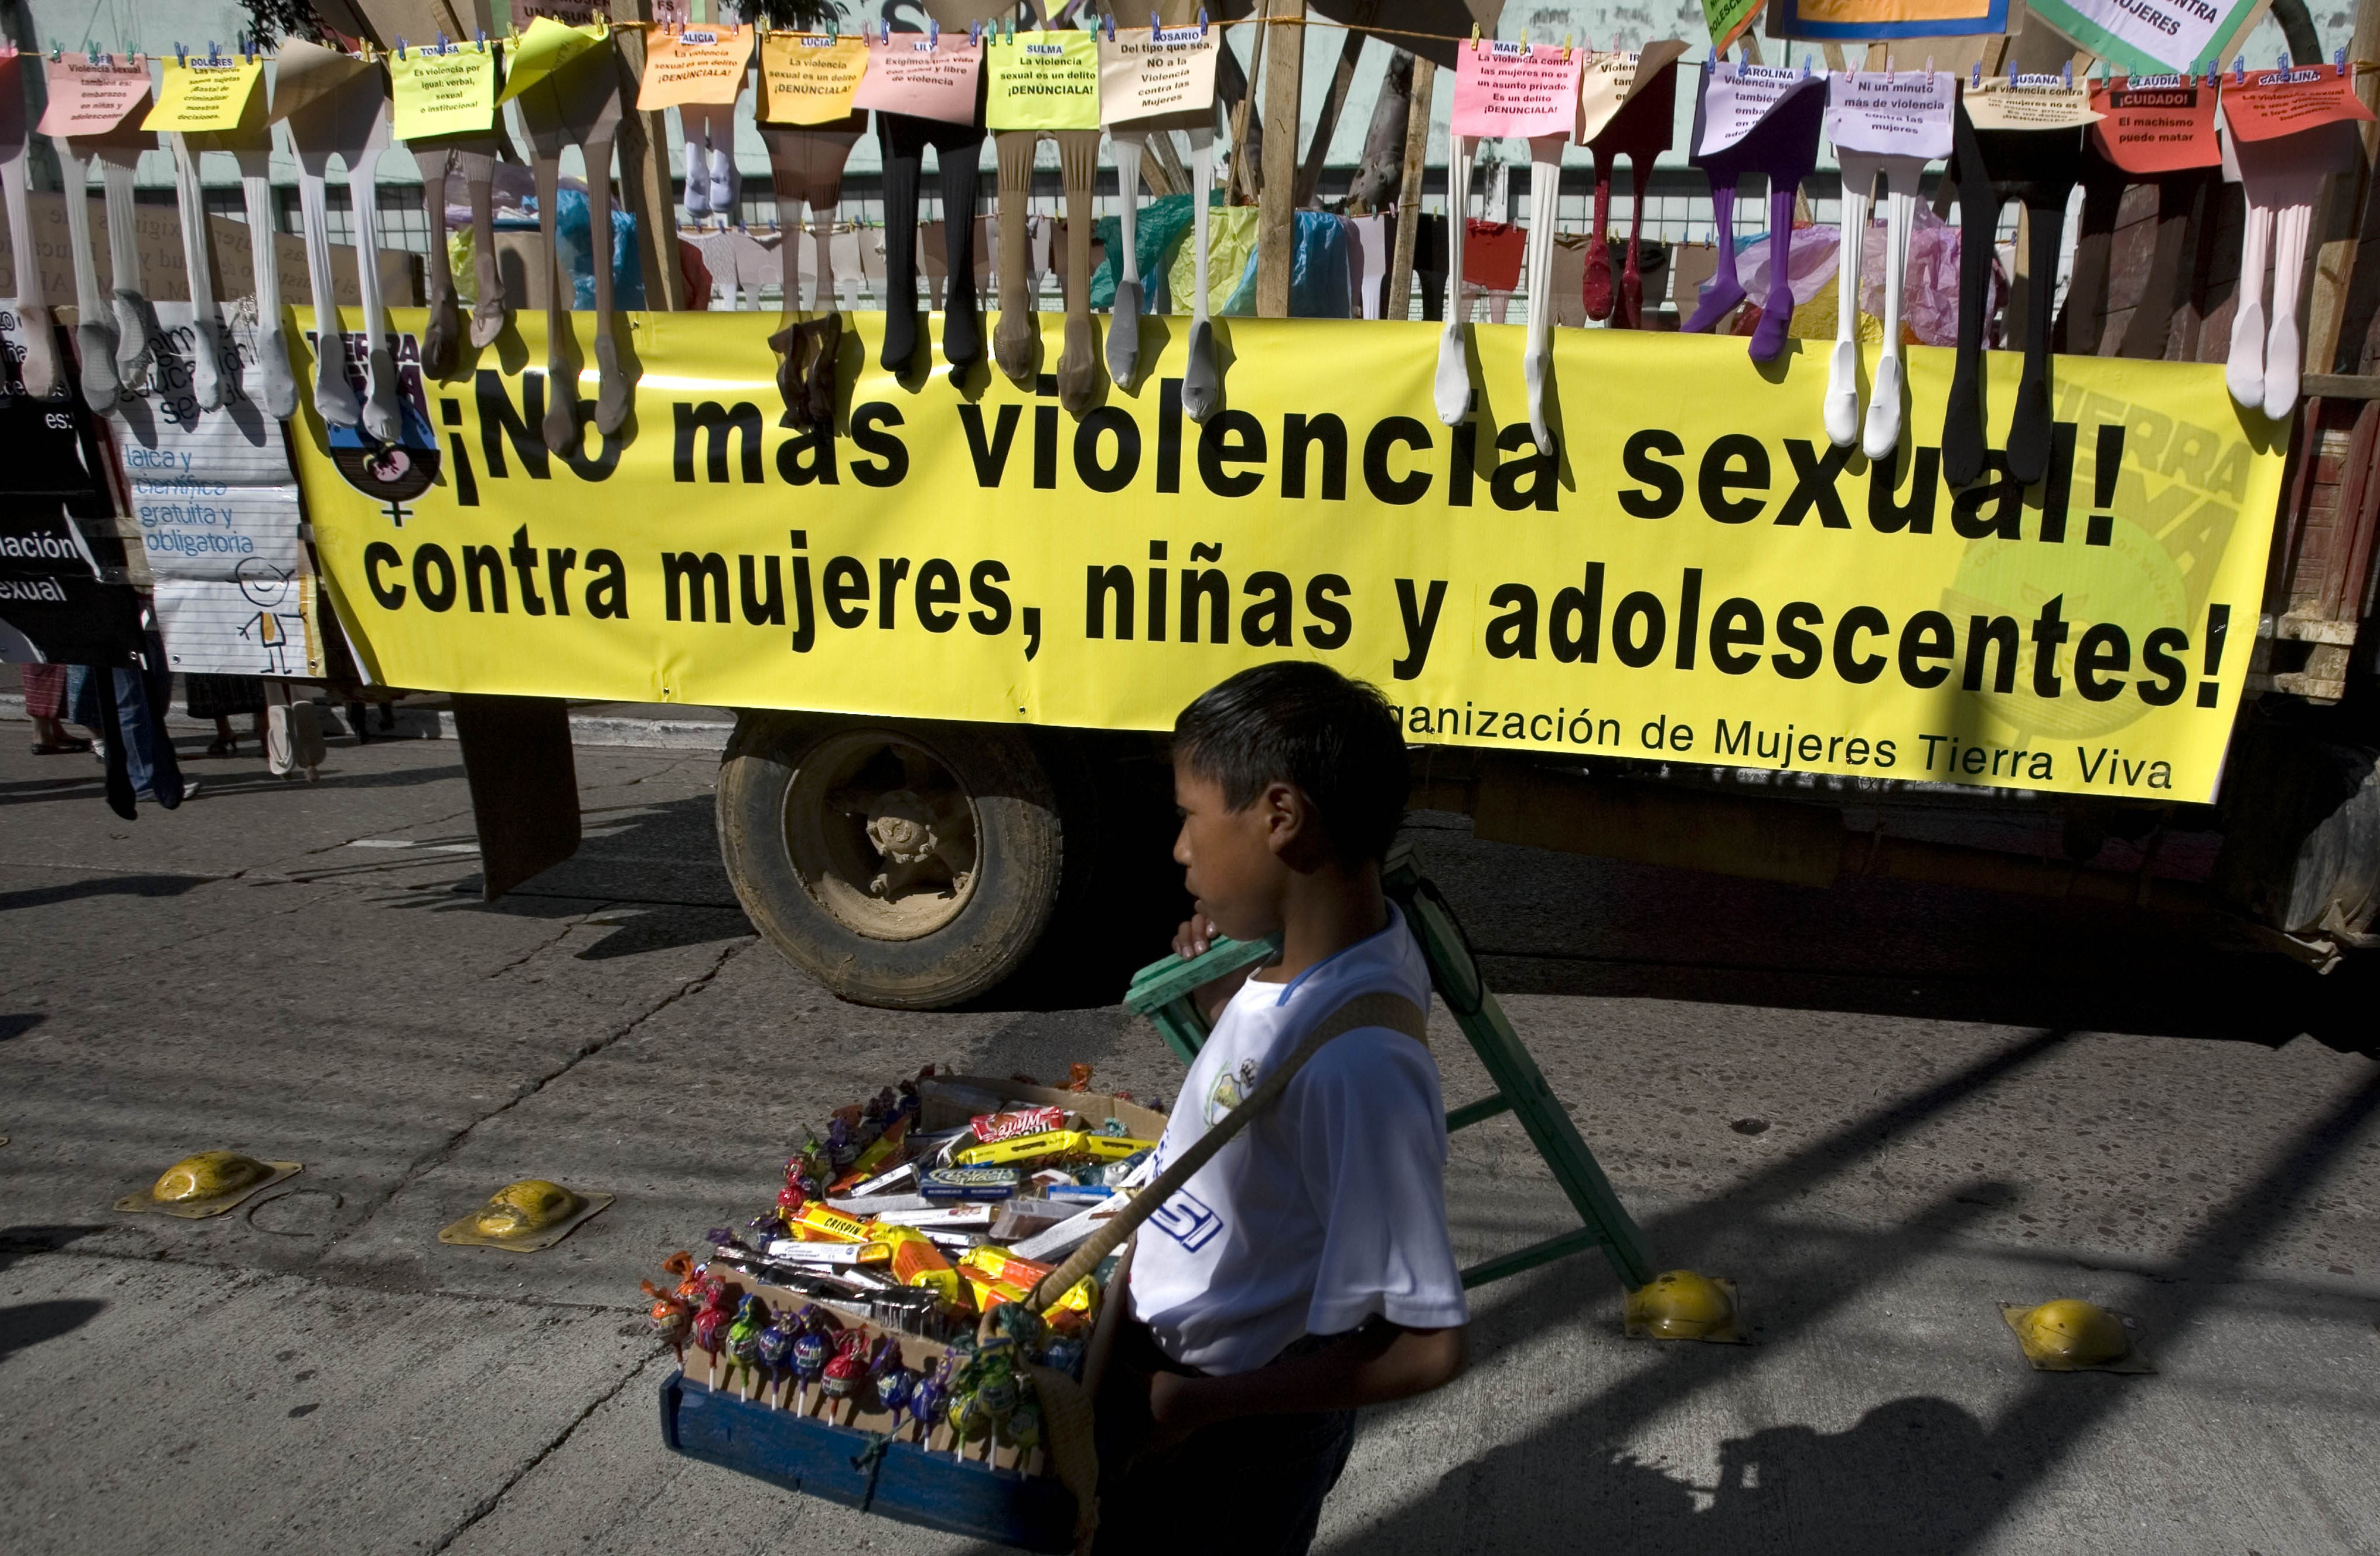 sex drugs and violence on american Sex, violence, and drugs among latin american and caribbean adolescents do engaged parents make a difference inder j ruprah ricardo sierra heather sutton this publication was a joint collaboration between the caribbean economics team (ccb/ccb) and.